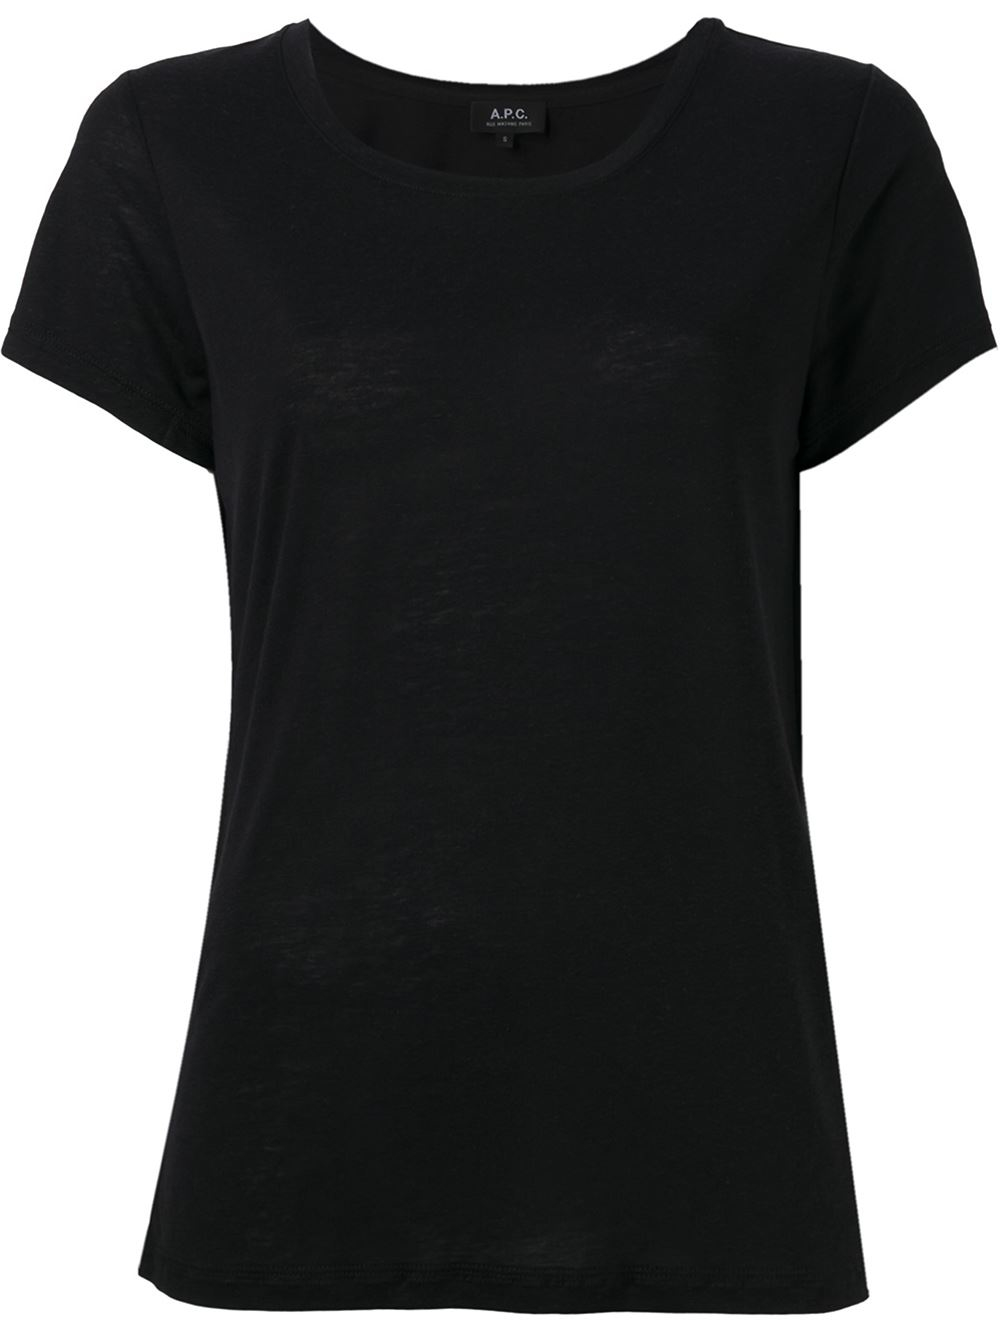 Black L'Agence t-shirt with scoop neck and cap sleeves. $ Get Sale Alert Free Ship + Free Returns Caslon Short Sleeve Scoop Neck Tee Soft, stretchy cotton comprises a scoop-neck tee with short sleeves. Style Name:Caslon Short Sleeve Scoop Neck Tee (Regular & .